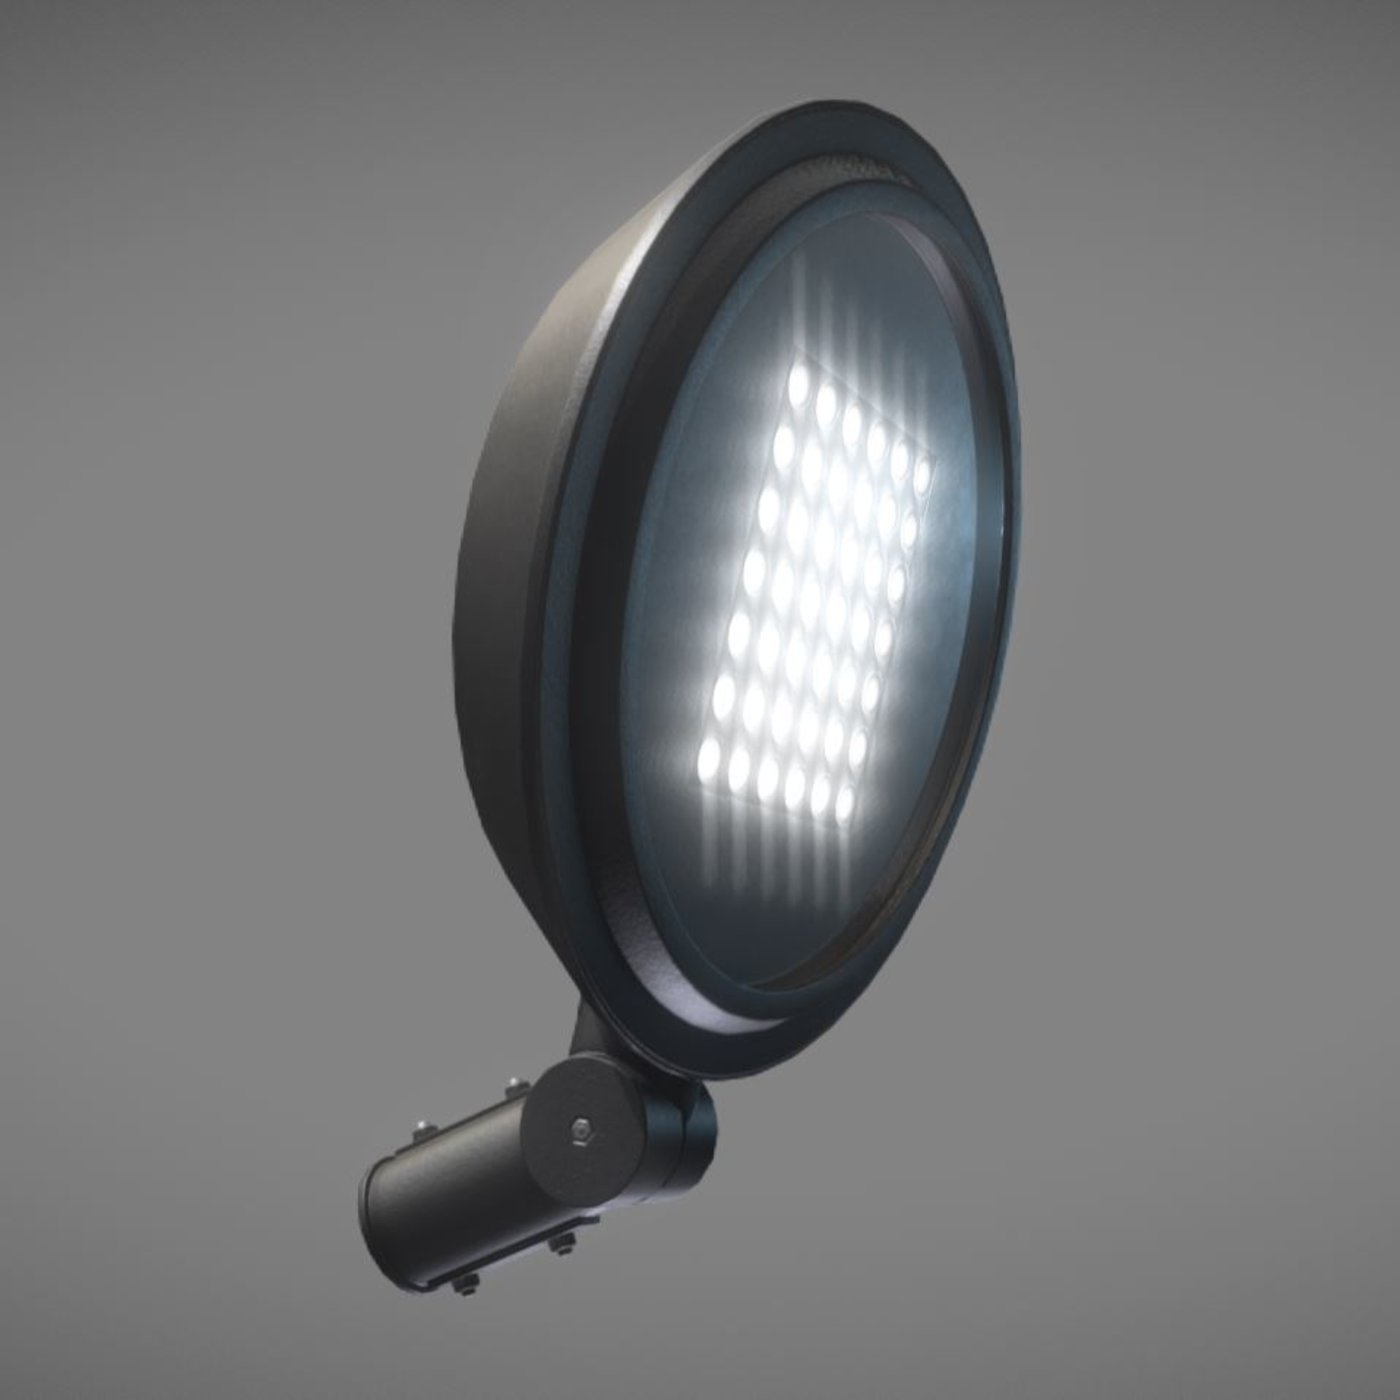 Sci-Fi City Light - Street Light 15 (Low-Poly Version) - Blender-2.80.1